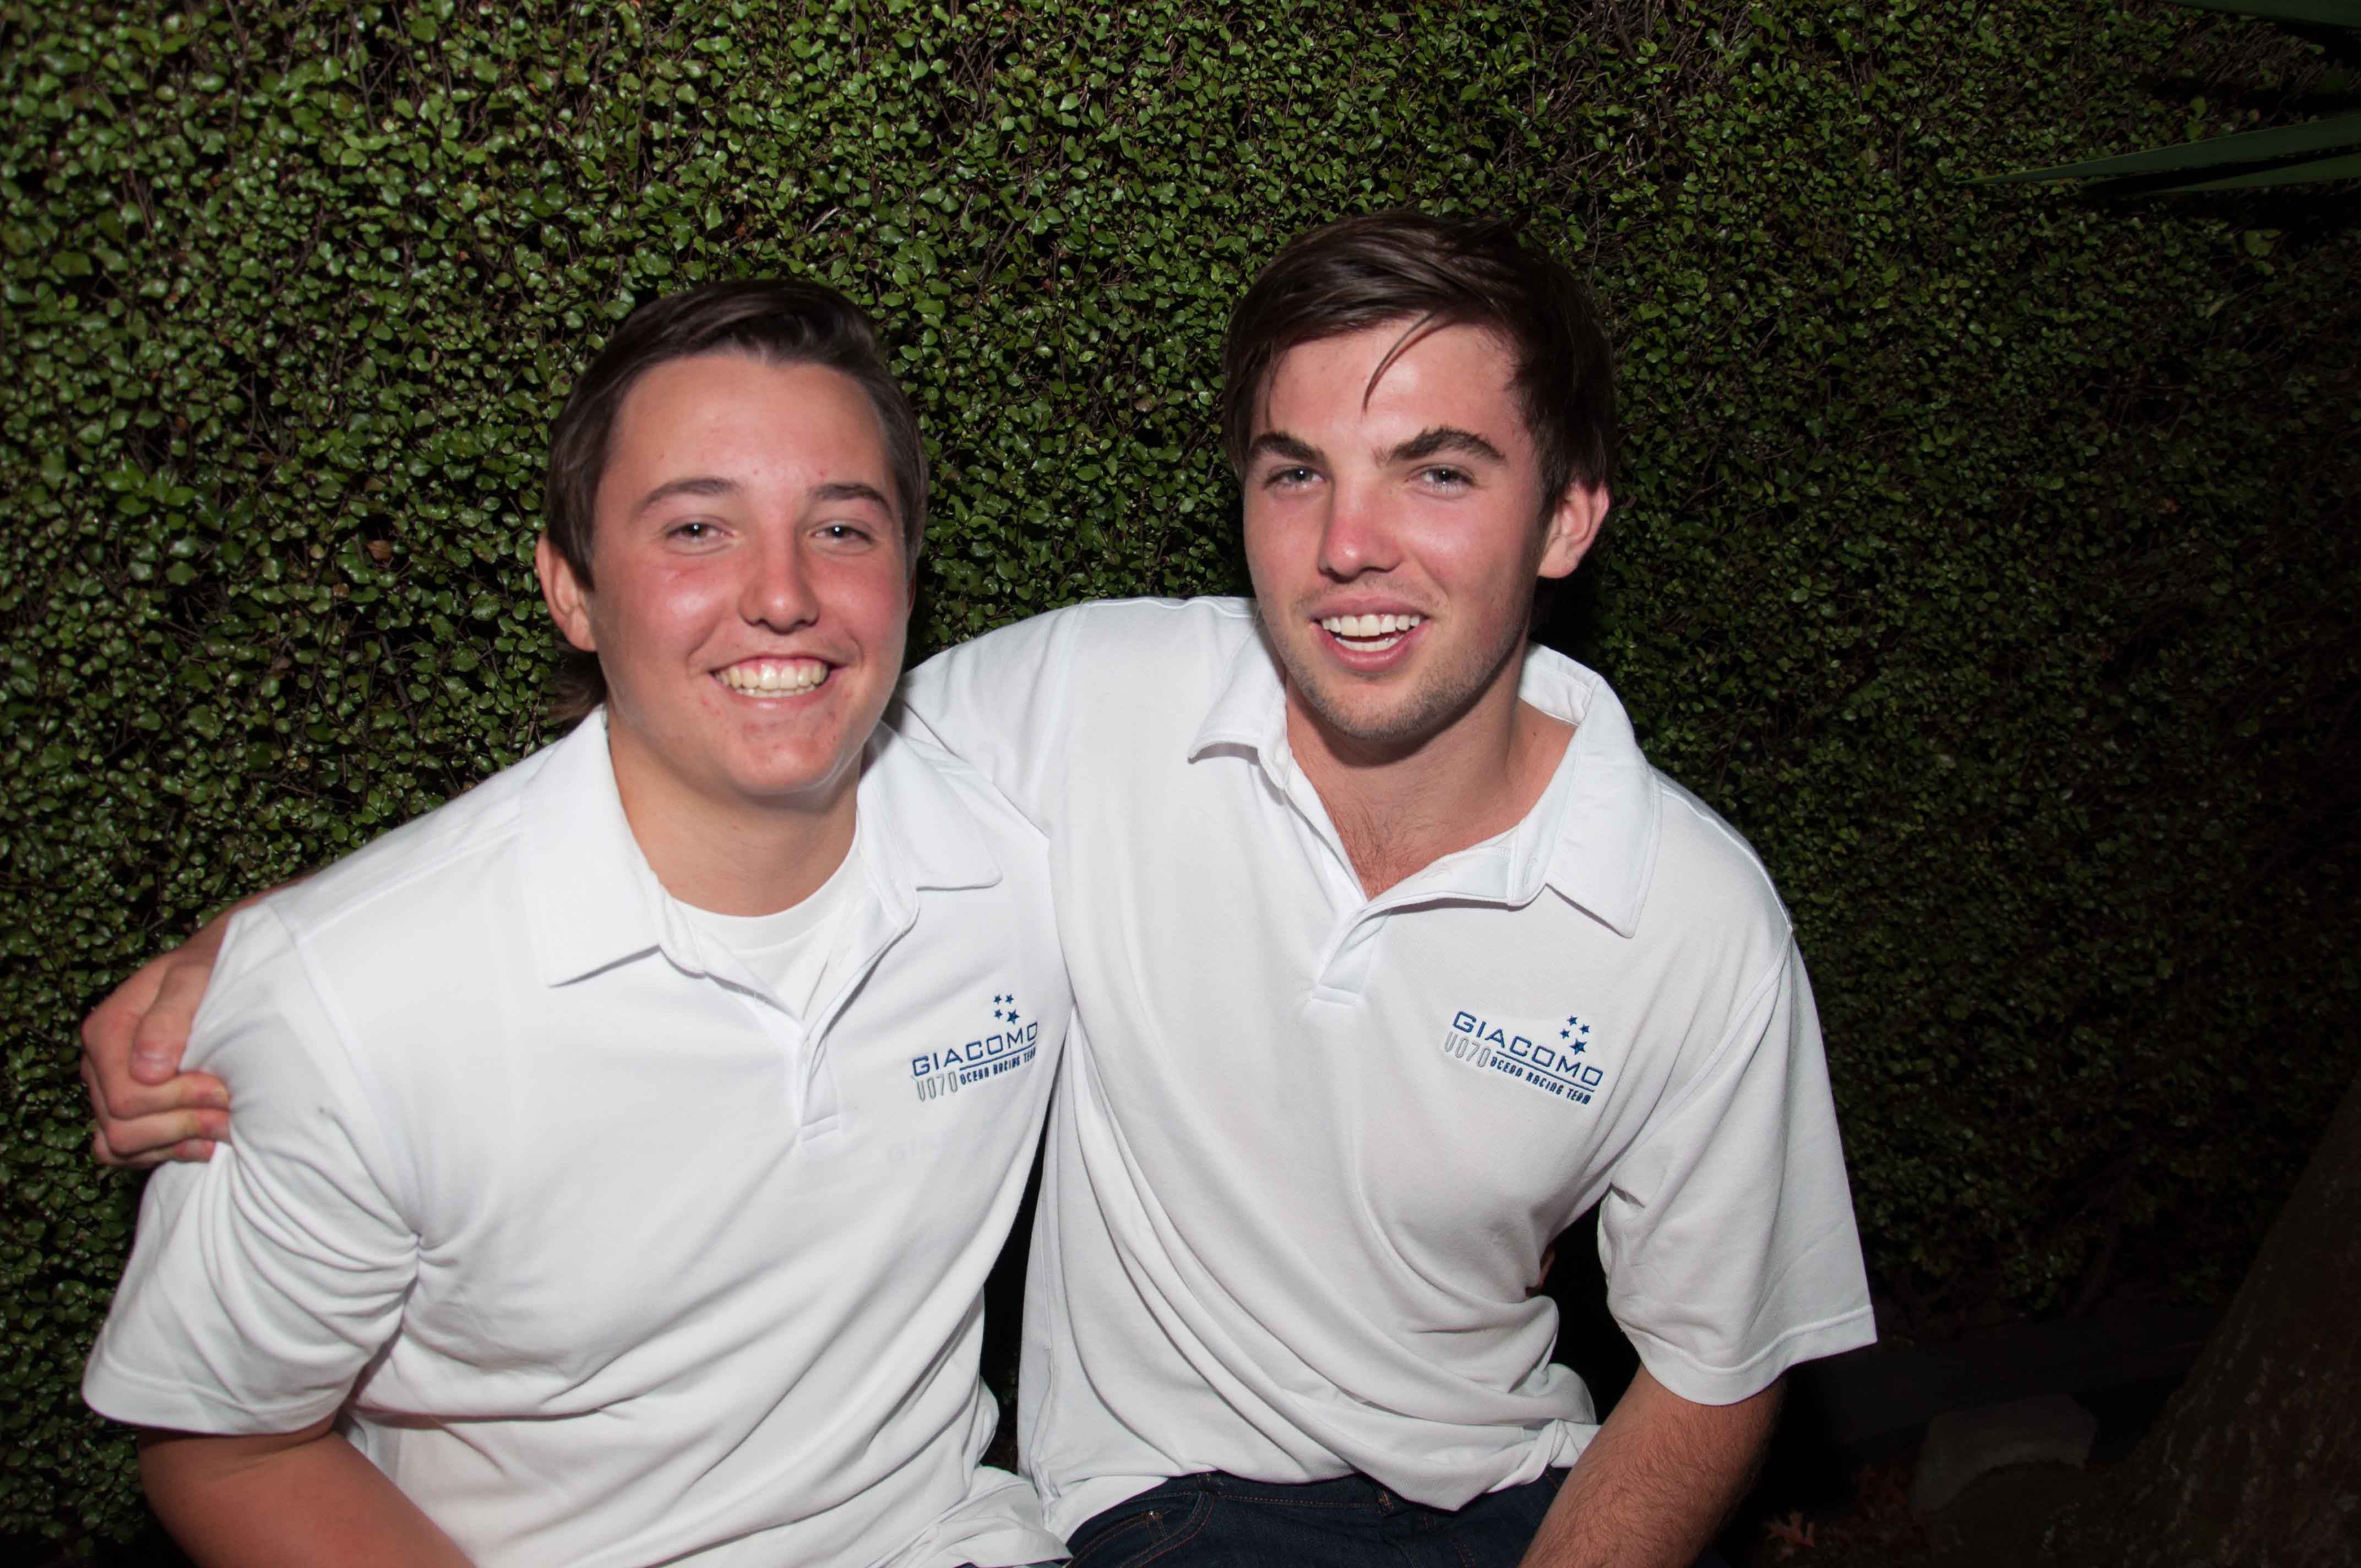 Brothers to embark on first ocean race together. Photo by Suellen Hurling